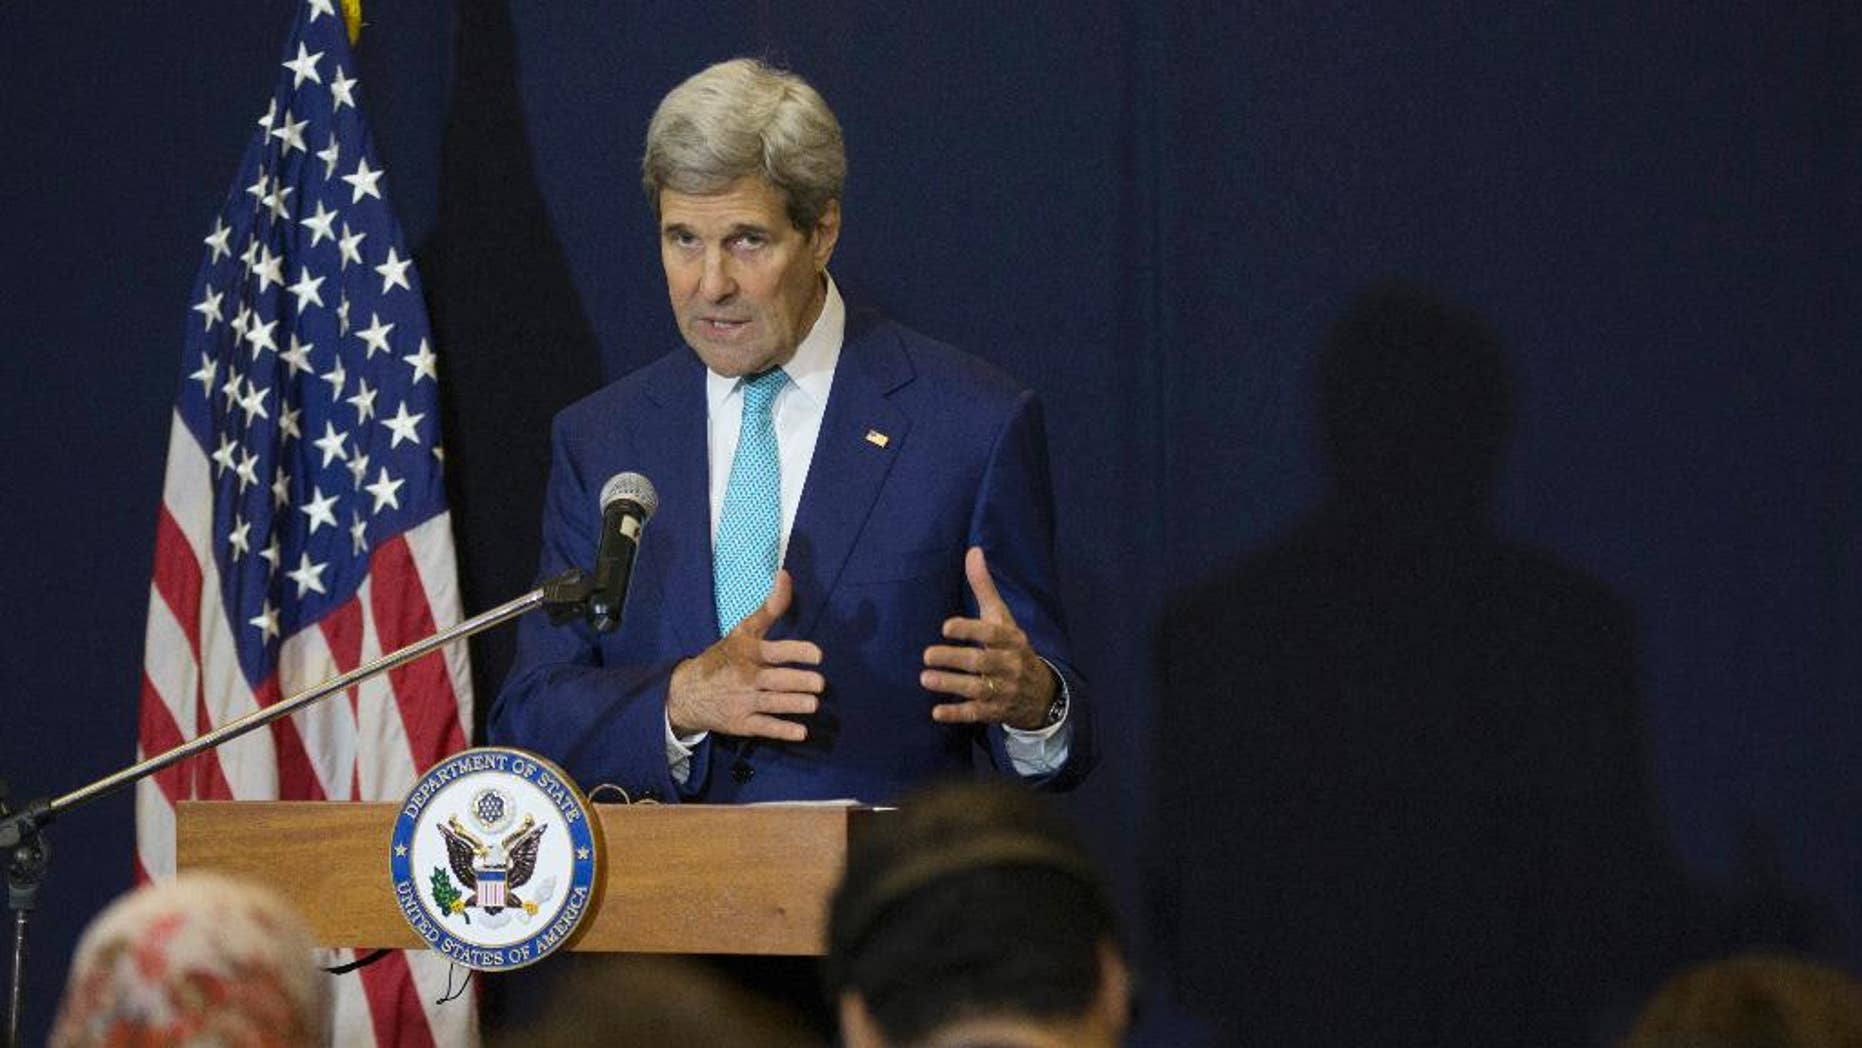 """U.S. Secretary of State John Kerry speaks at a news conference in Sharm el-Sheikh in Egypt Saturday, March 14, 2015, after attending the Egypt Economic Development Conference the previous day. Kerry says he hopes Israel elects a government that can address the country's domestic needs and also """"meets the hope for peace."""" (AP Photo/Brian Snyder, Pool)"""